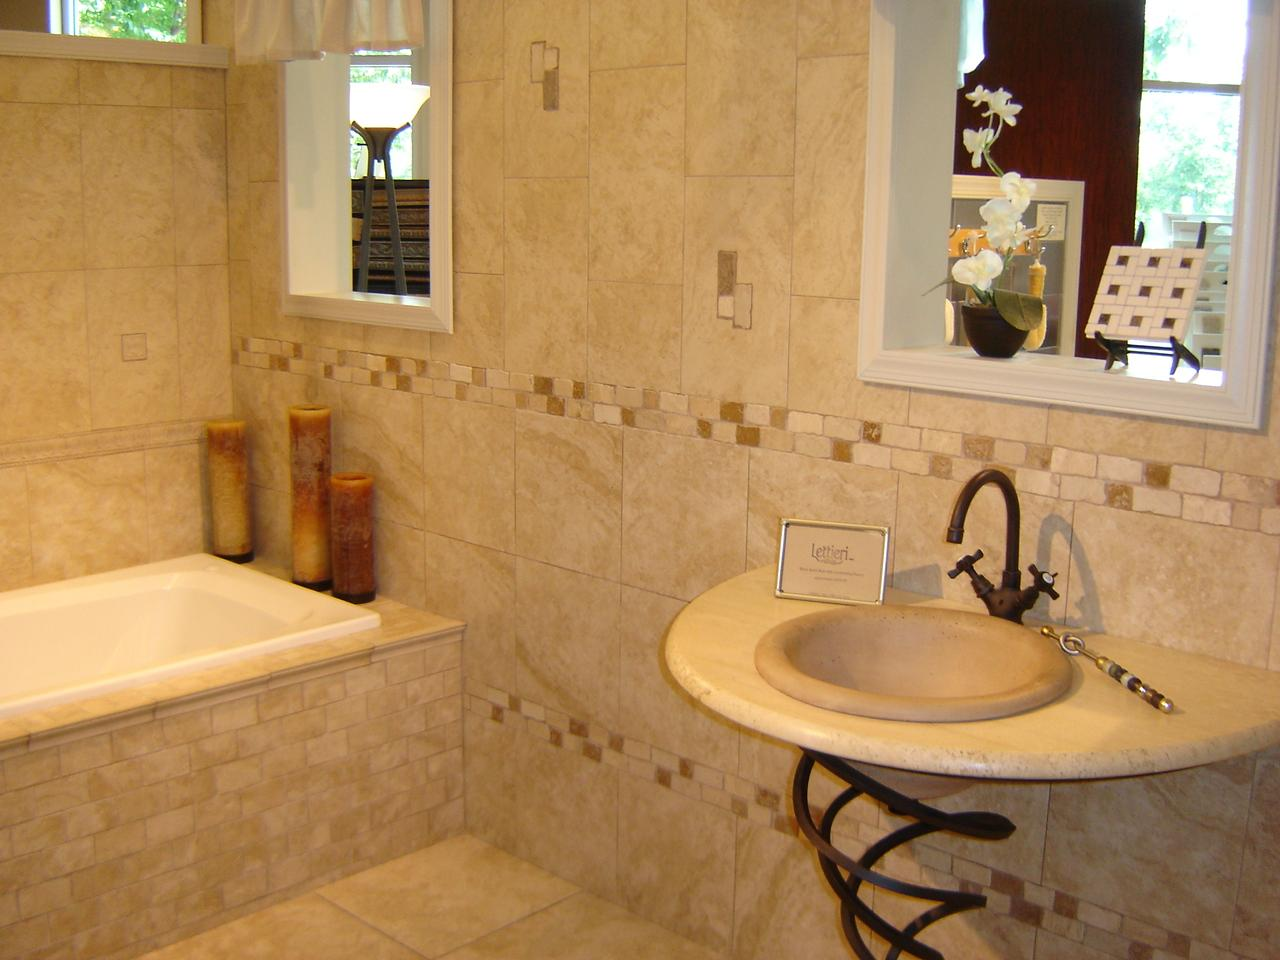 Tile Designs For Small Bathrooms